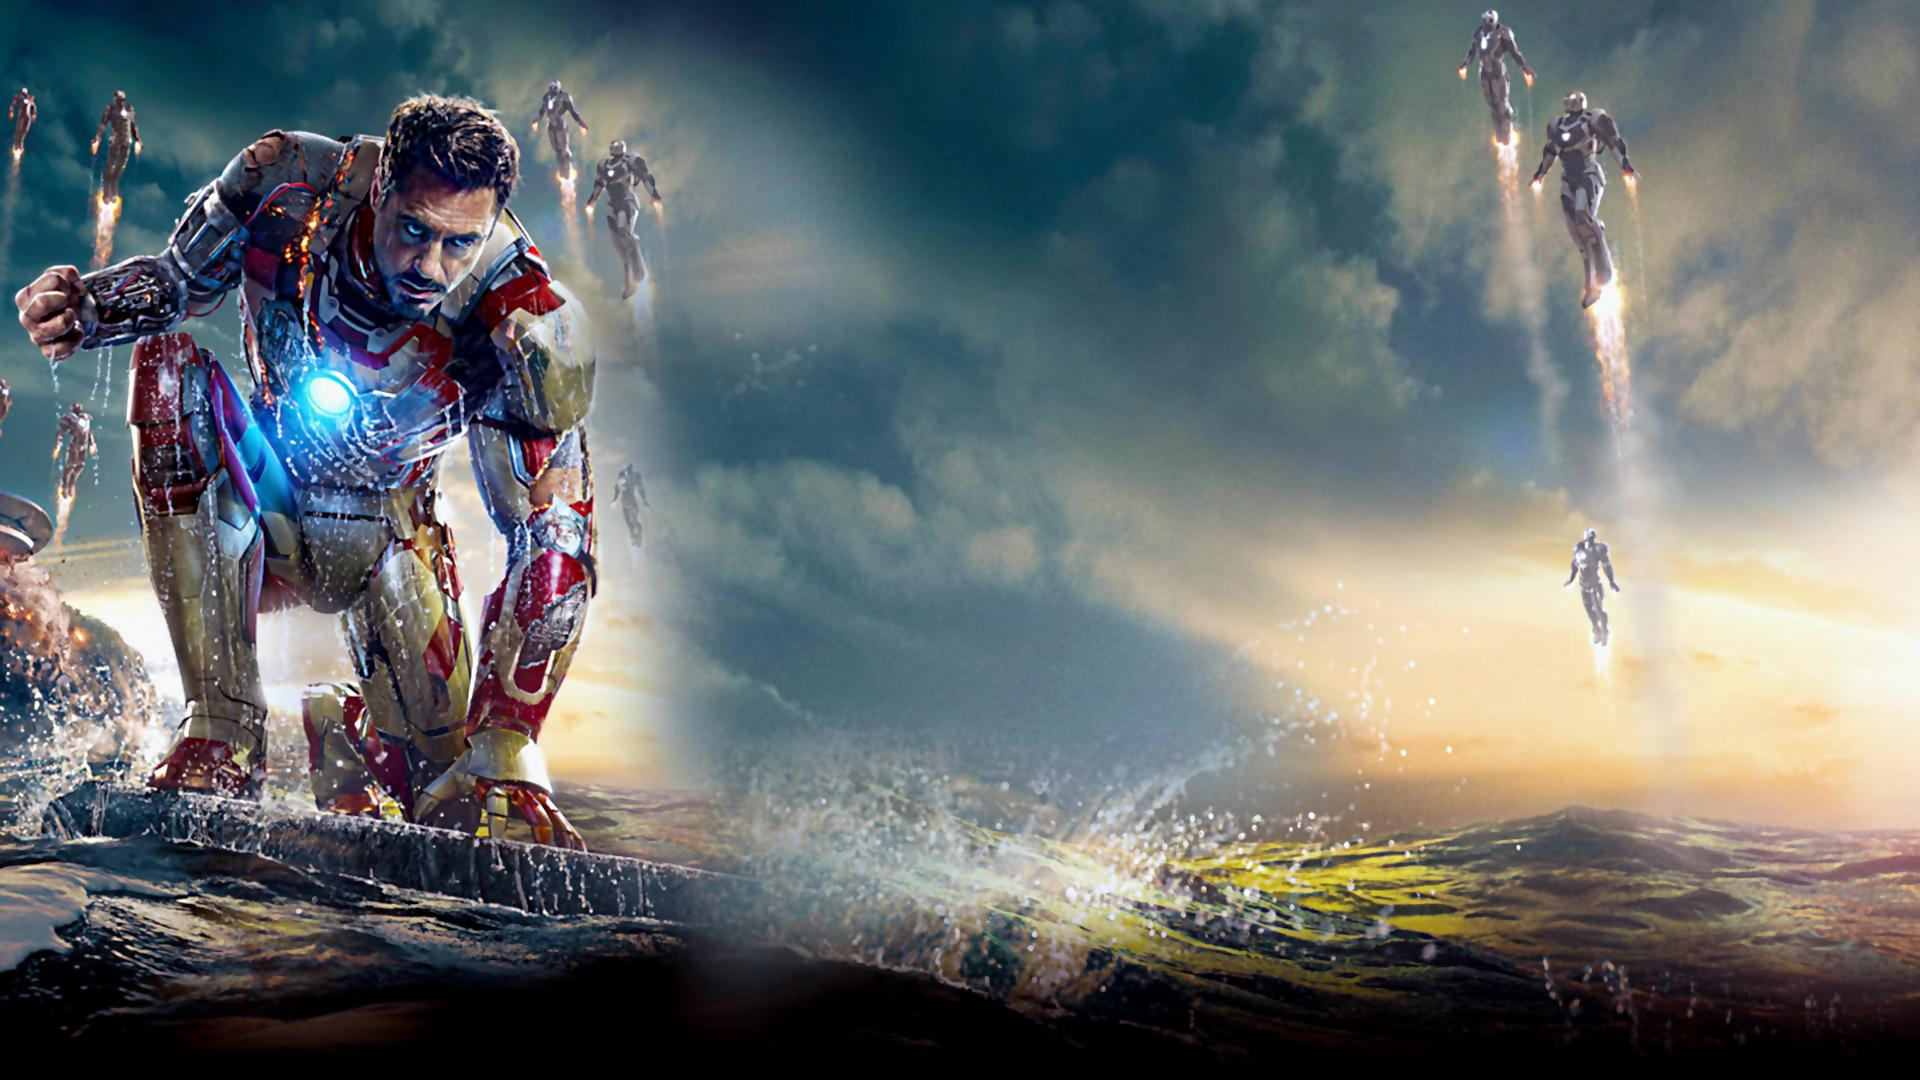 All New Hd Images Free Download Desktop Images Background: Iron Man Wallpapers HD Free Download